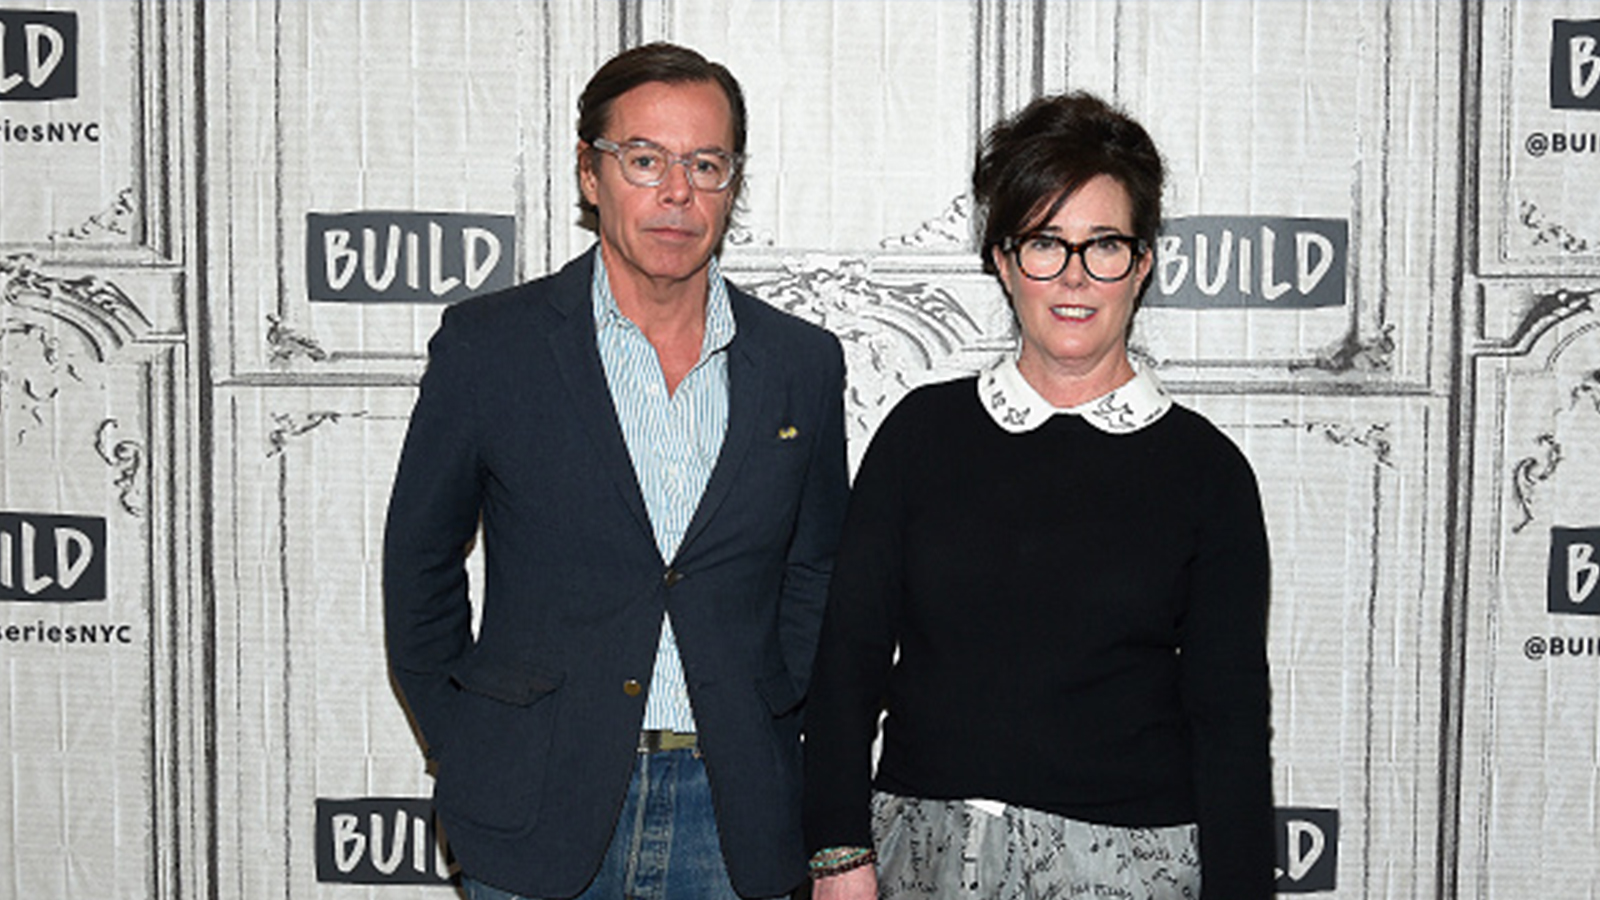 Andy-Spade-Breaks-His-Silence-After-Kate-Spades-Tragic-Death-She-Suffered-From-Anxiety-Depression-For-Many-Years